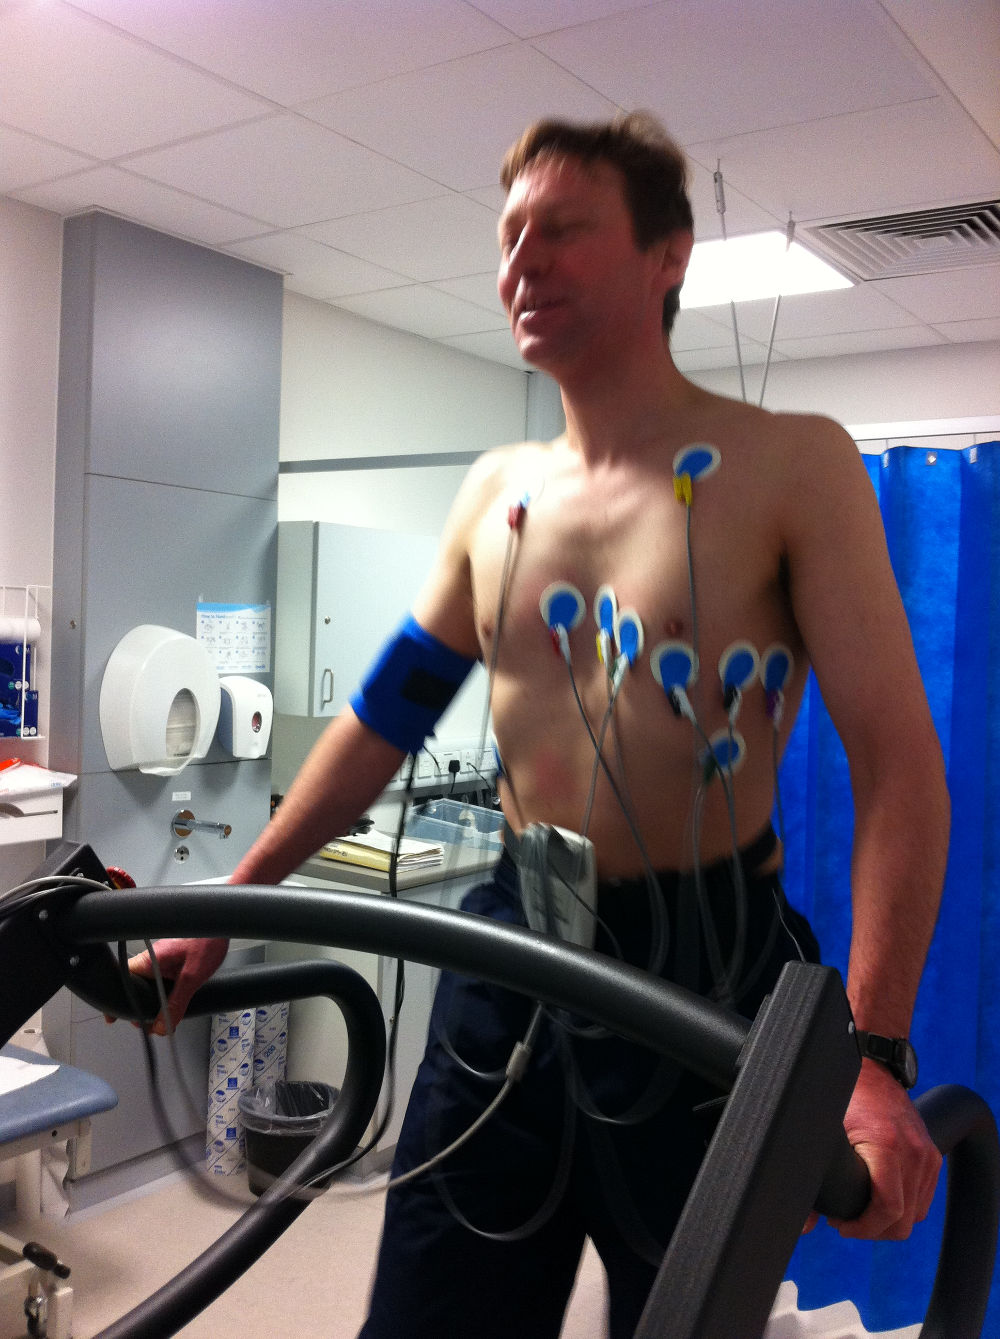 Me on the treadmill at the cardiology asessment